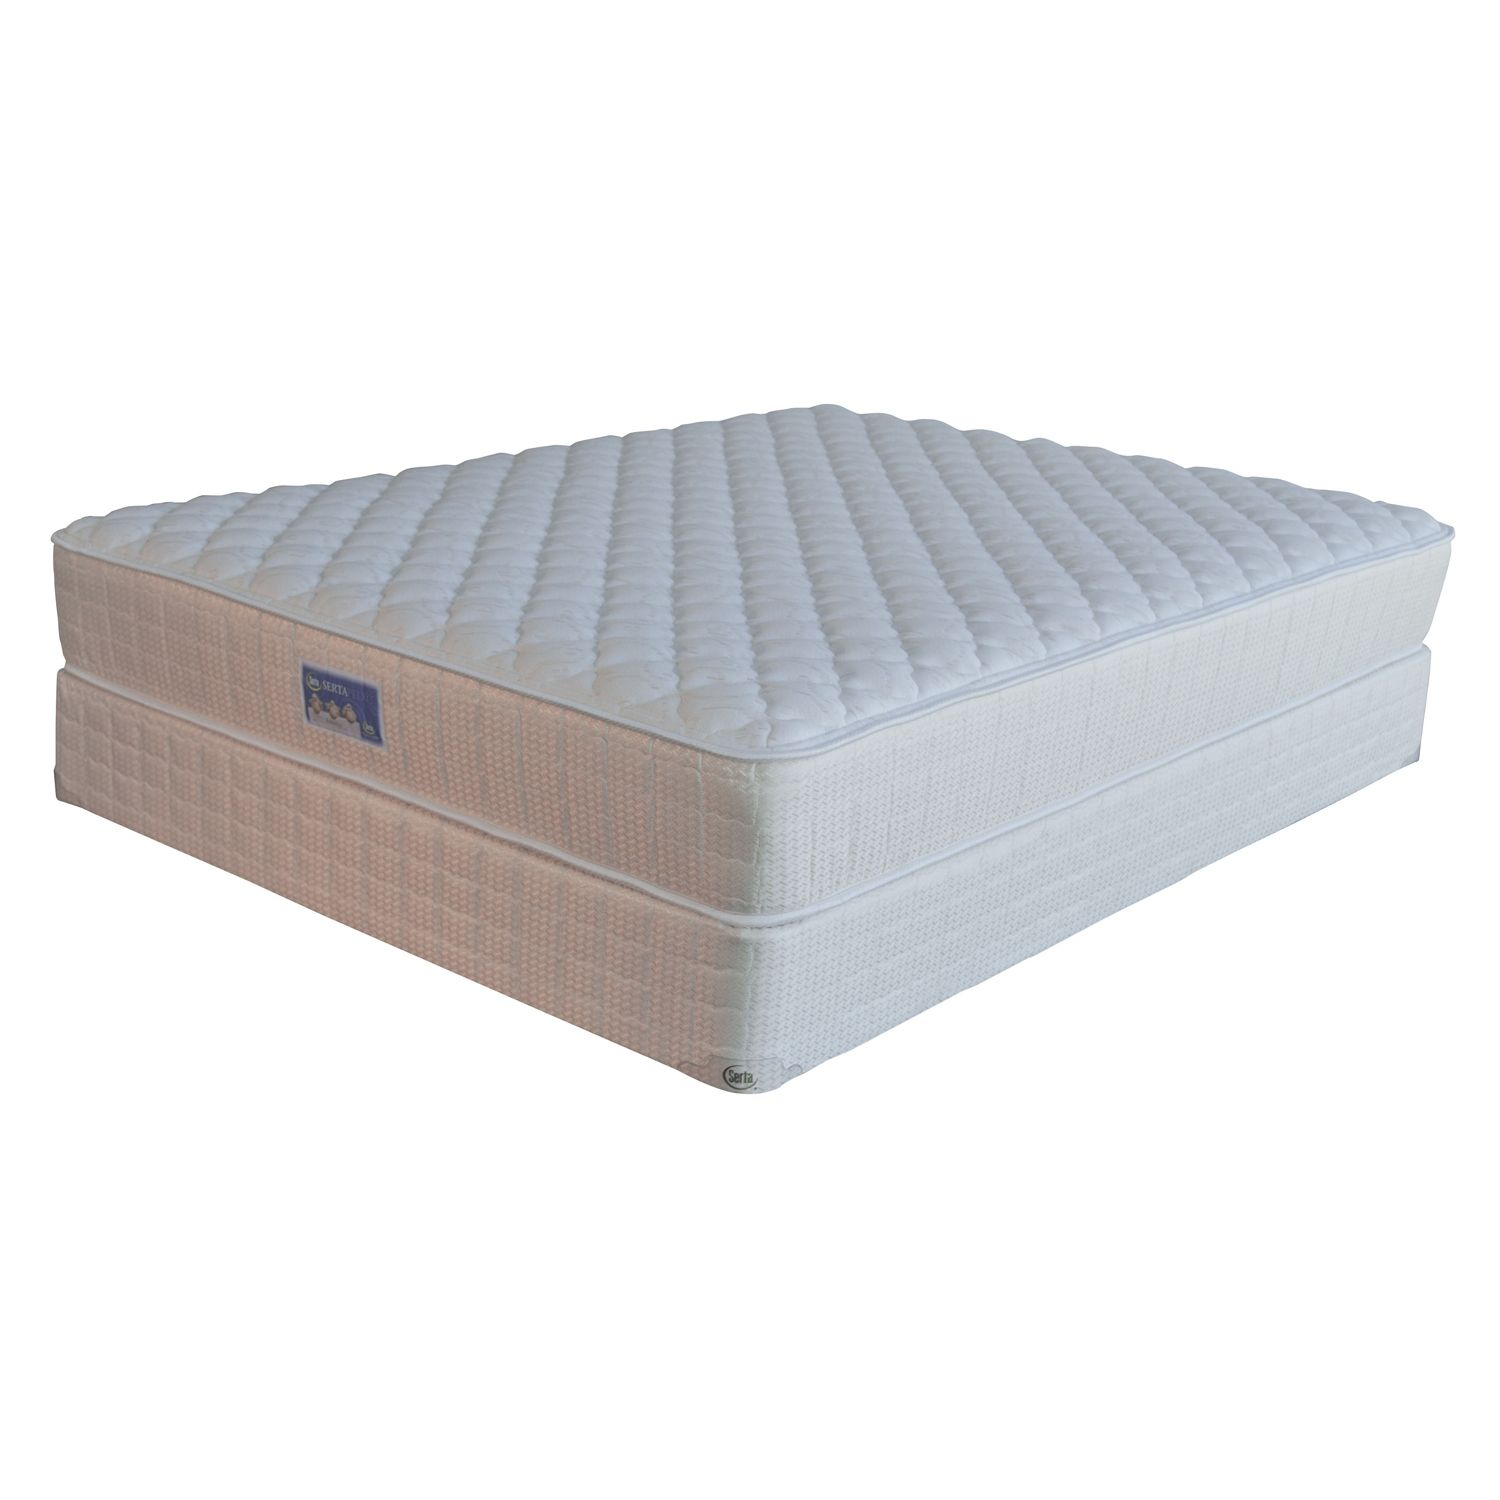 Serta Mattress Uk Check Out Serta Hutchinson Ii Queen Firm Mattress Shopyourway